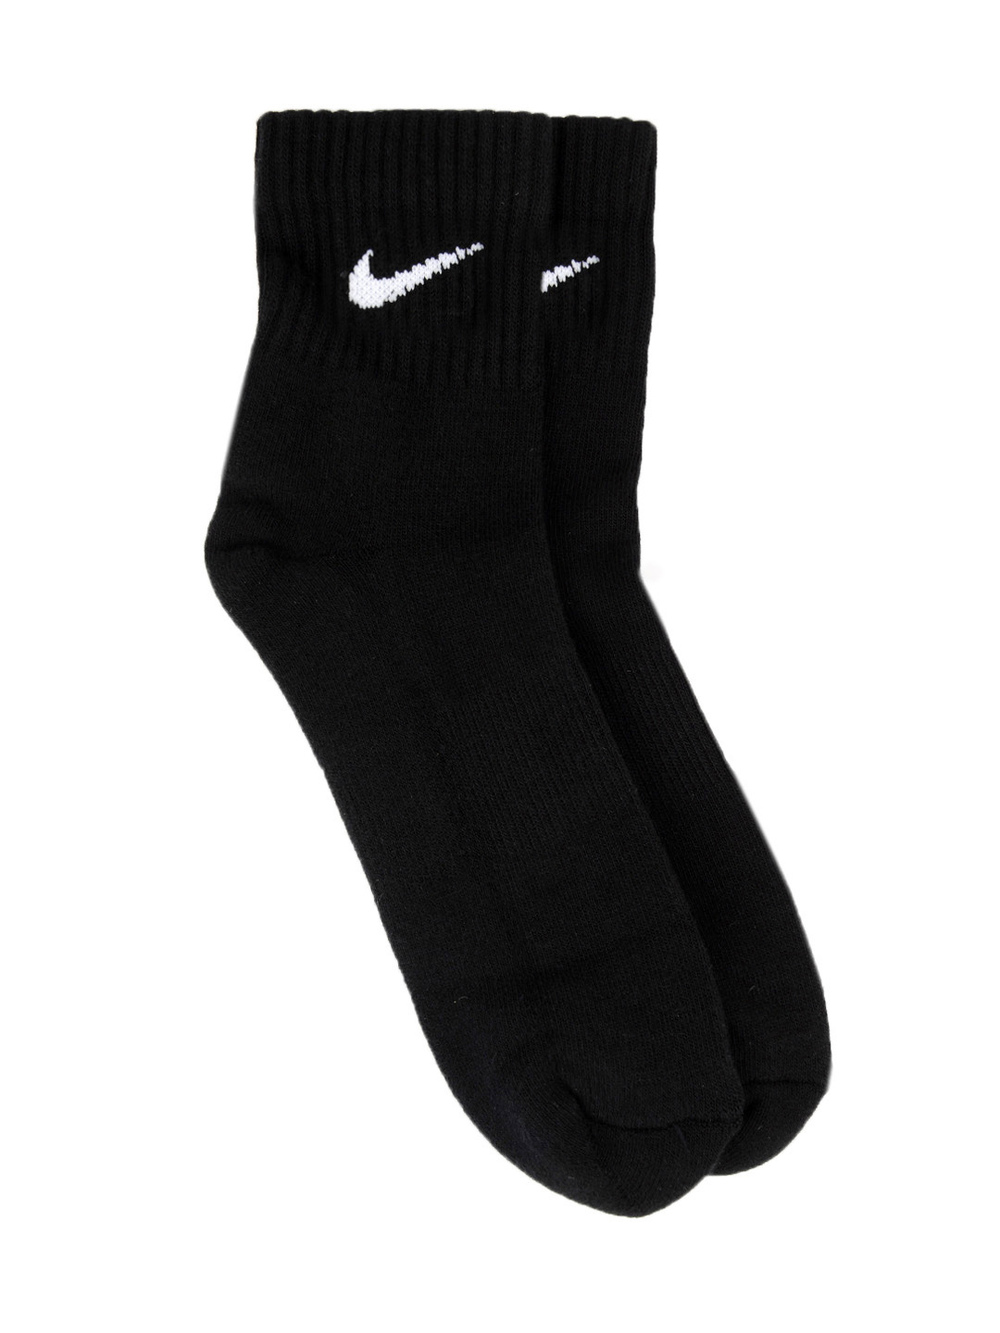 Nike-Men-Pair-of-Black-Sports-Socks_198d28359e055d7748a974e60cce2df0_images.jpg